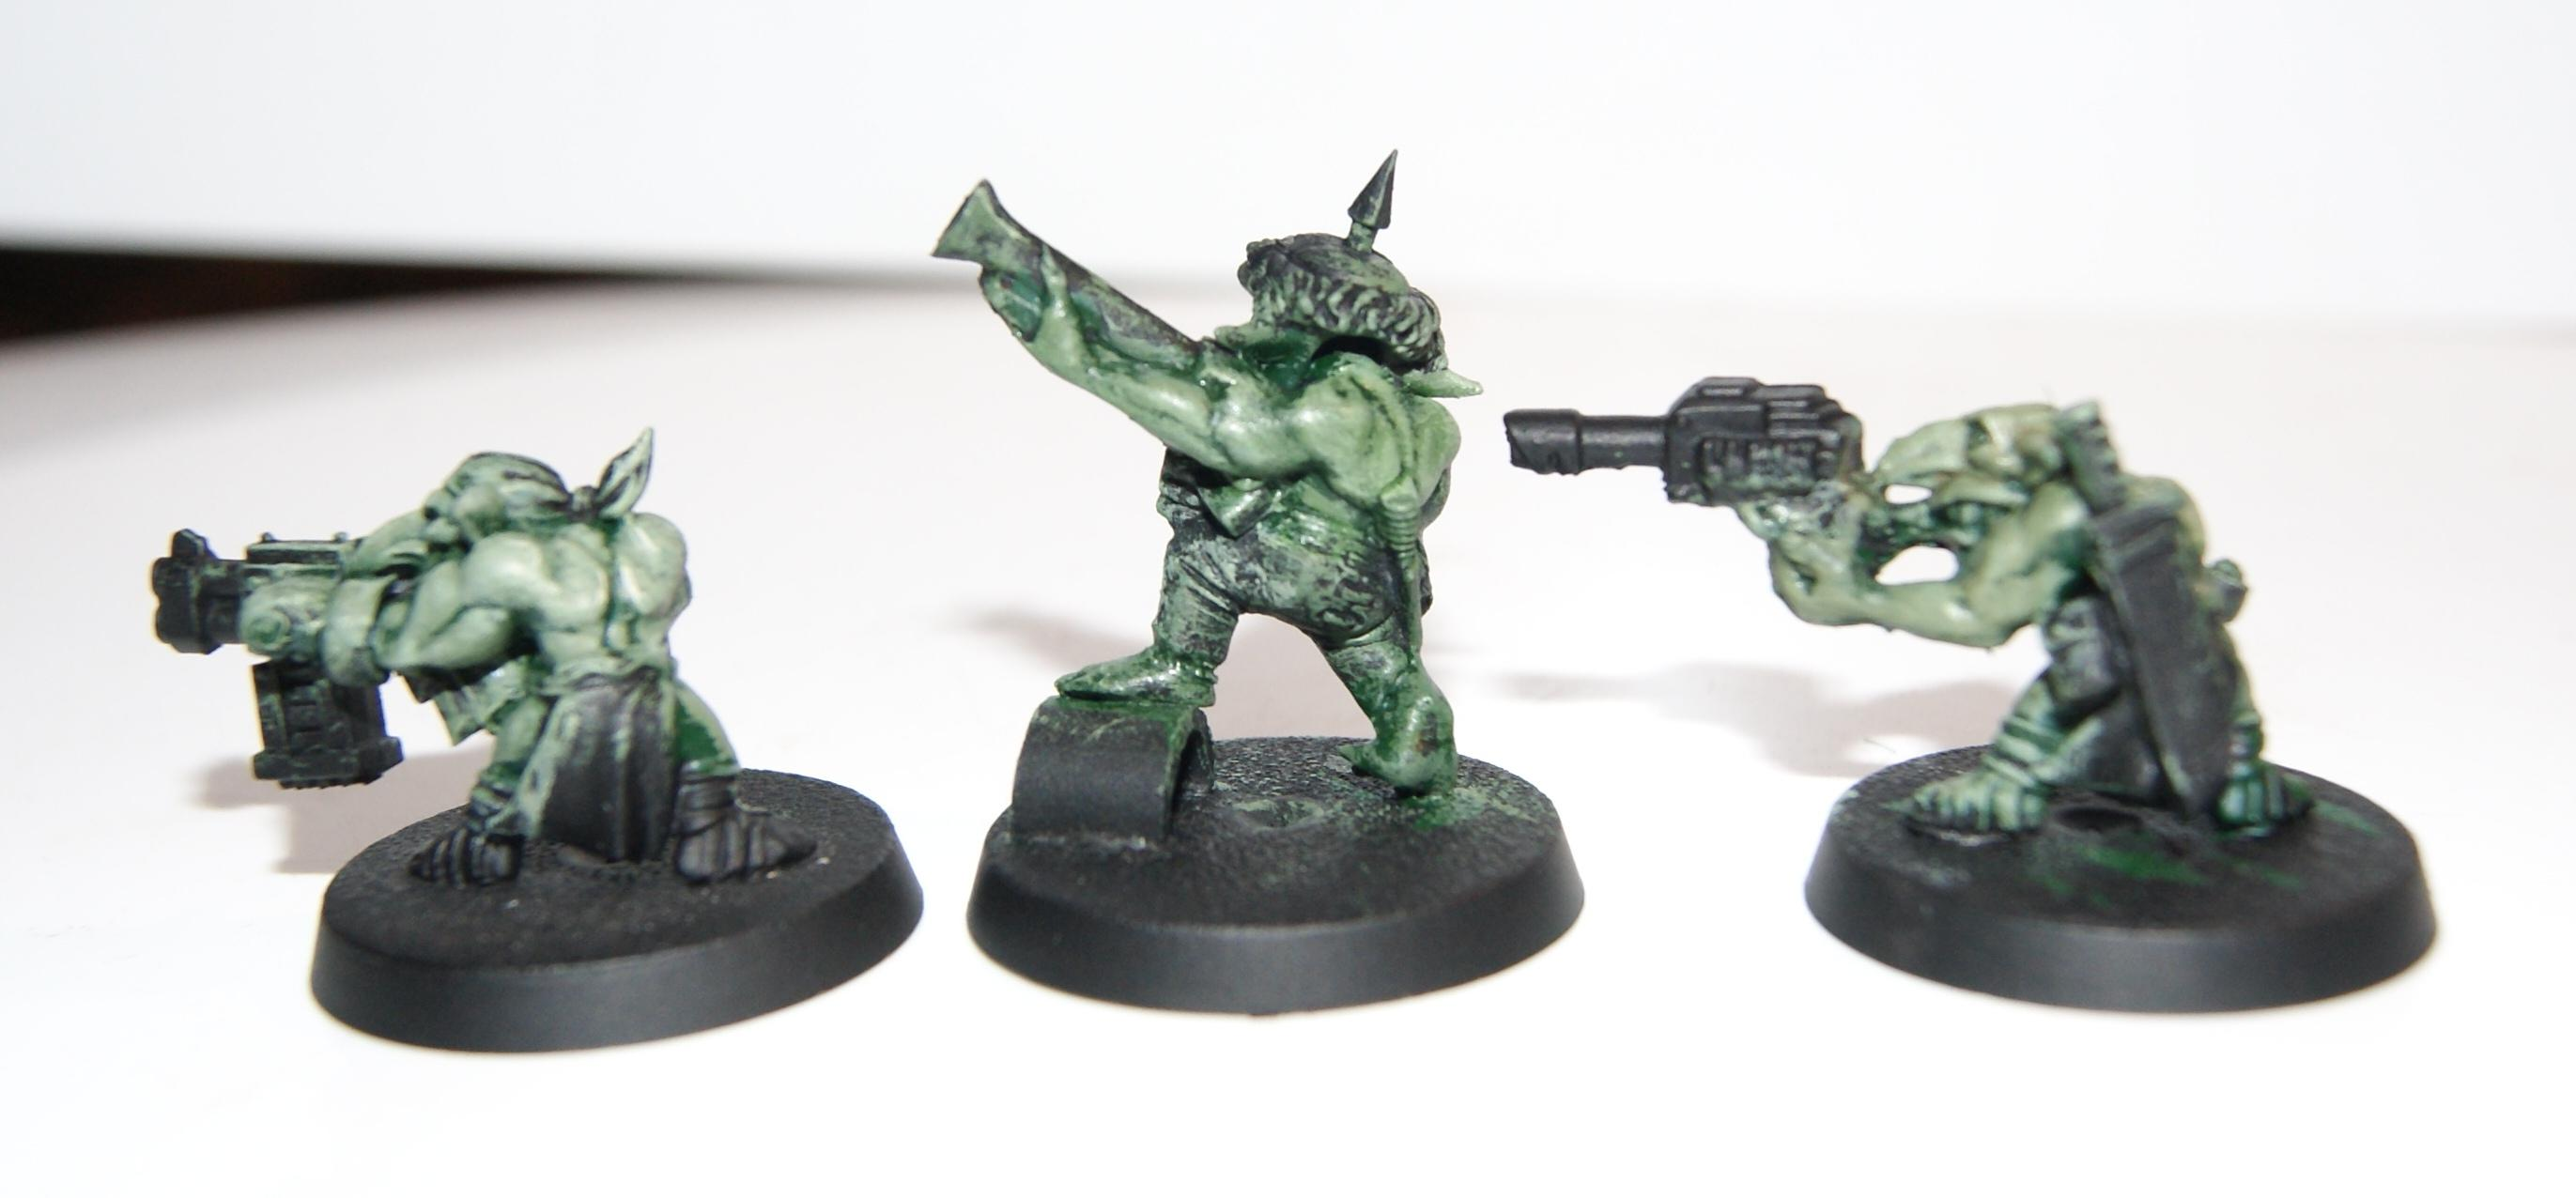 Conversion, Grot Rebellion, Grot Rebels, Grots, Warhammer 40,000